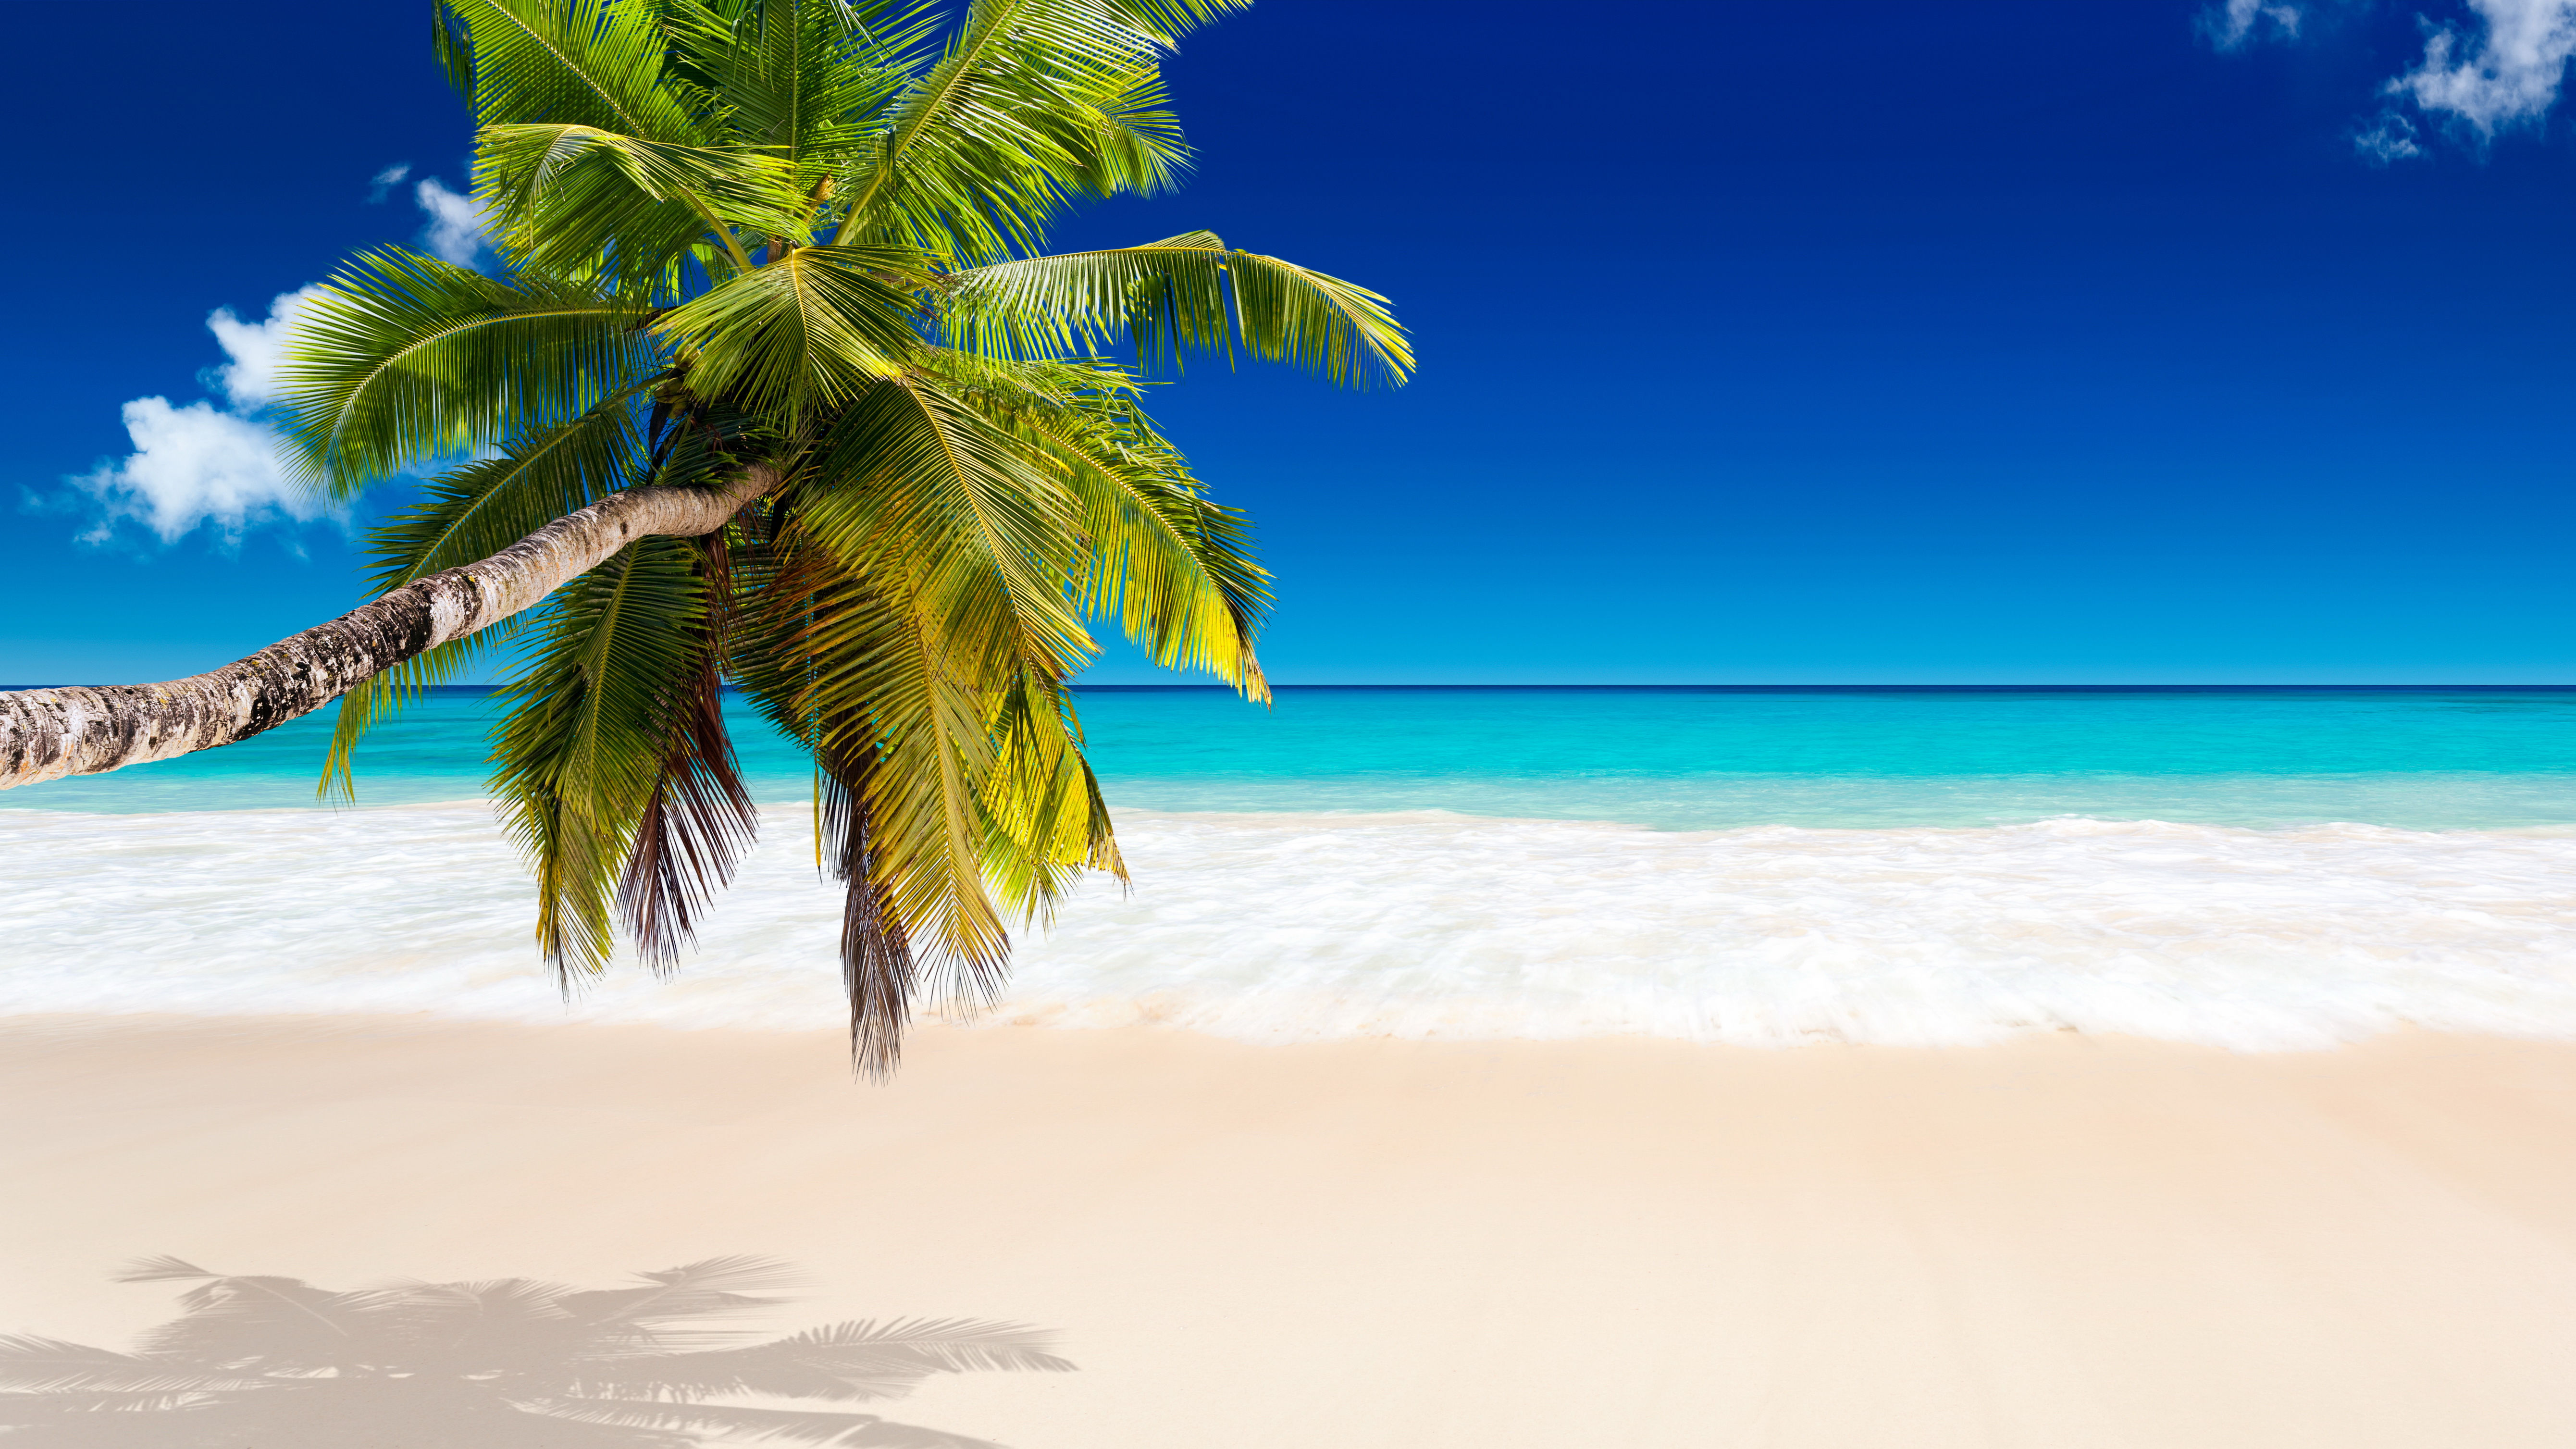 Tropical Beach Wallpapers, Pictures, Images png freeuse library